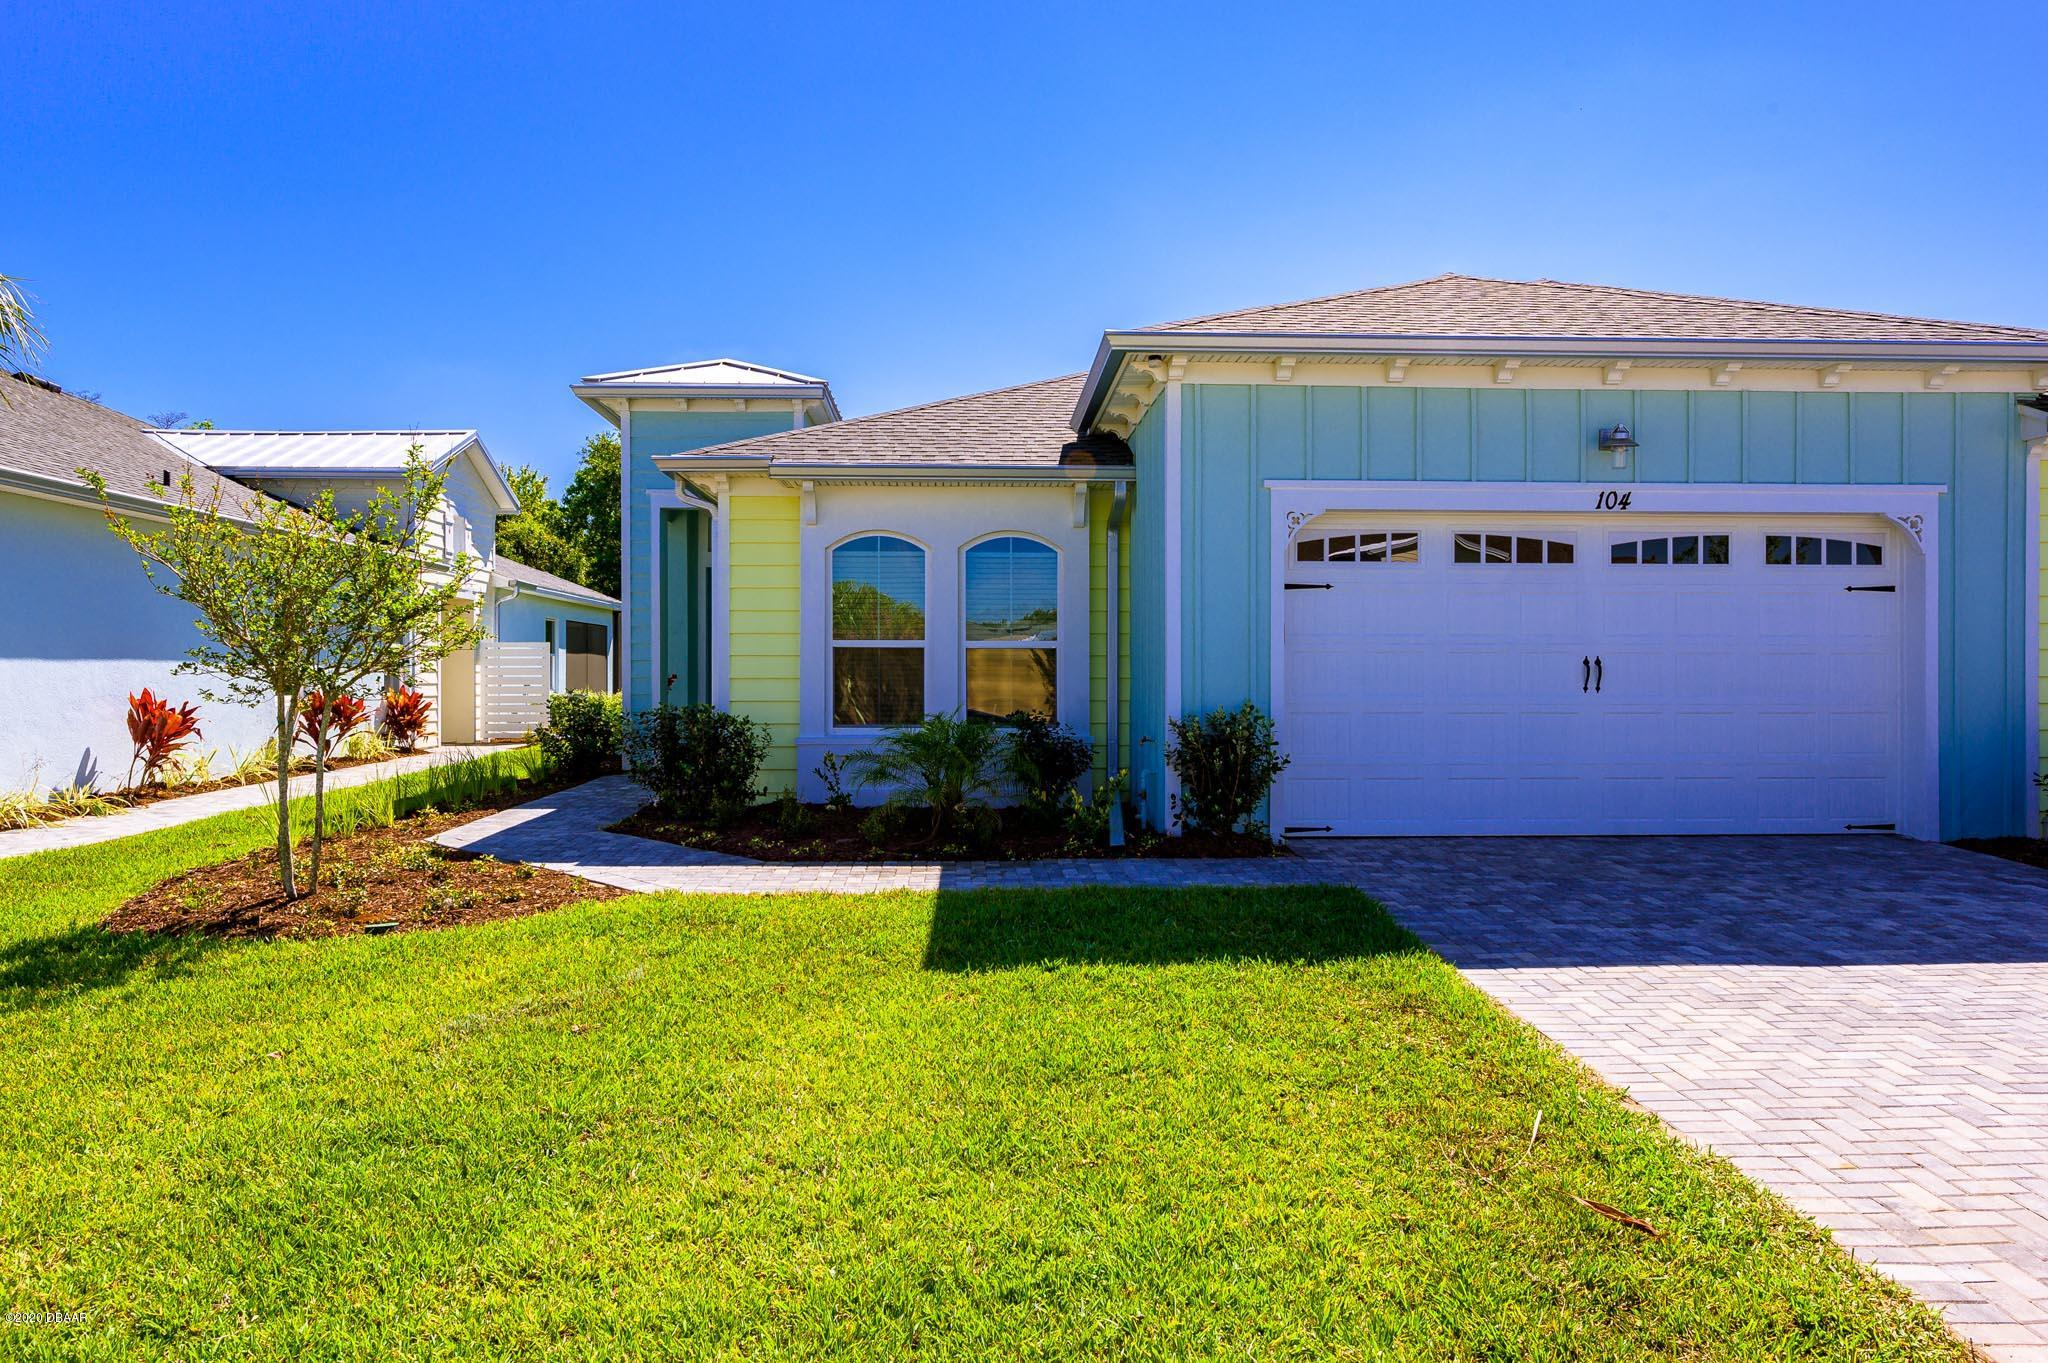 Photo of 104 Margaritaville Avenue, Daytona Beach, FL 32124